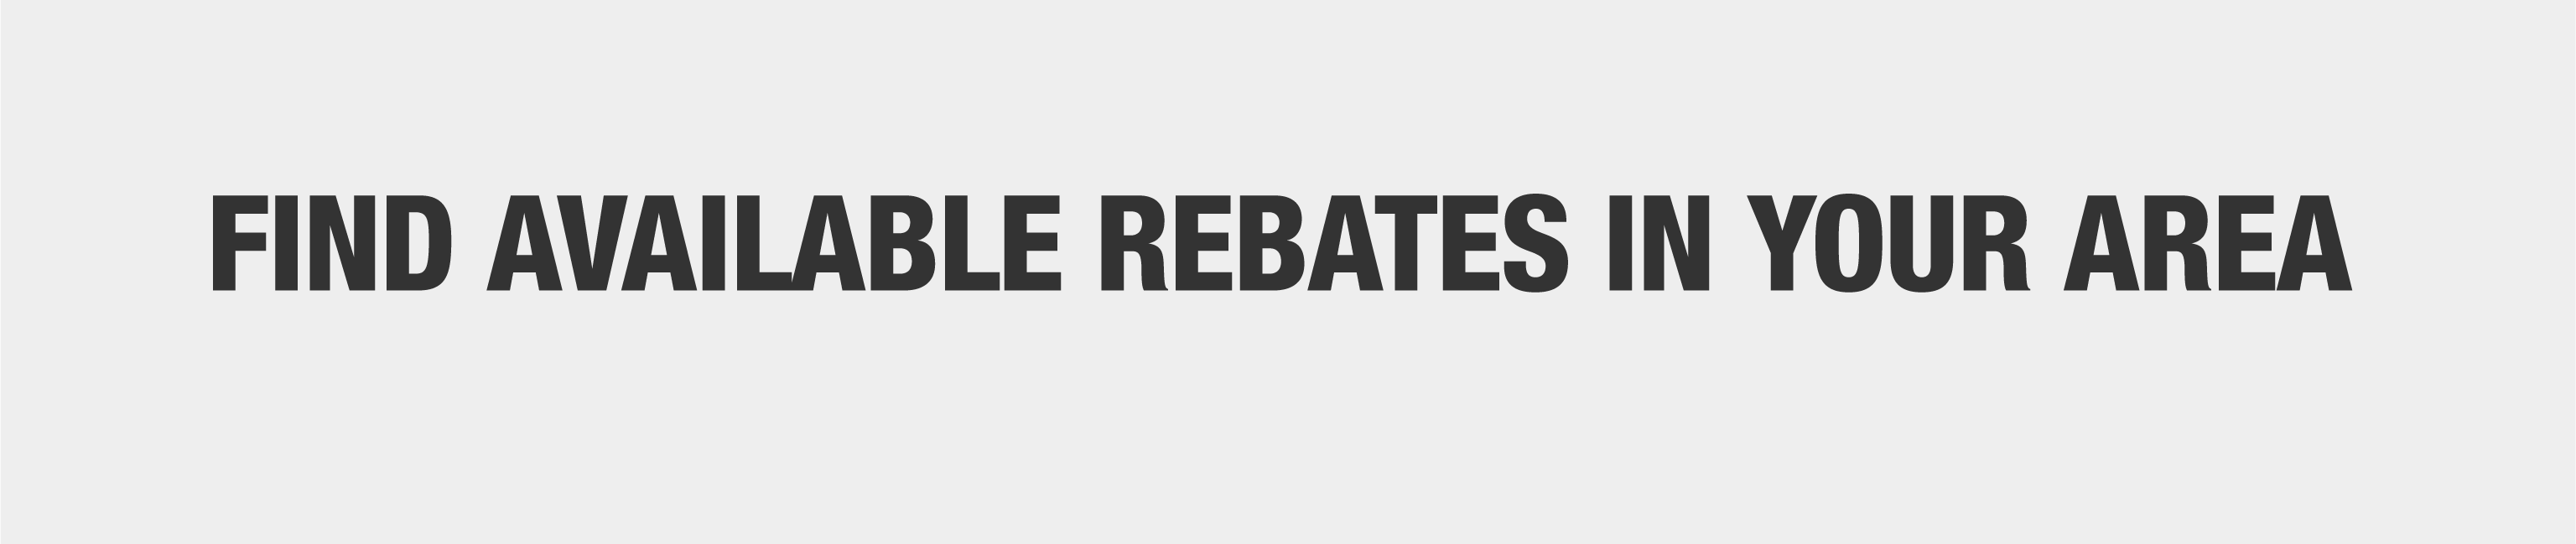 Find available rebates in your area